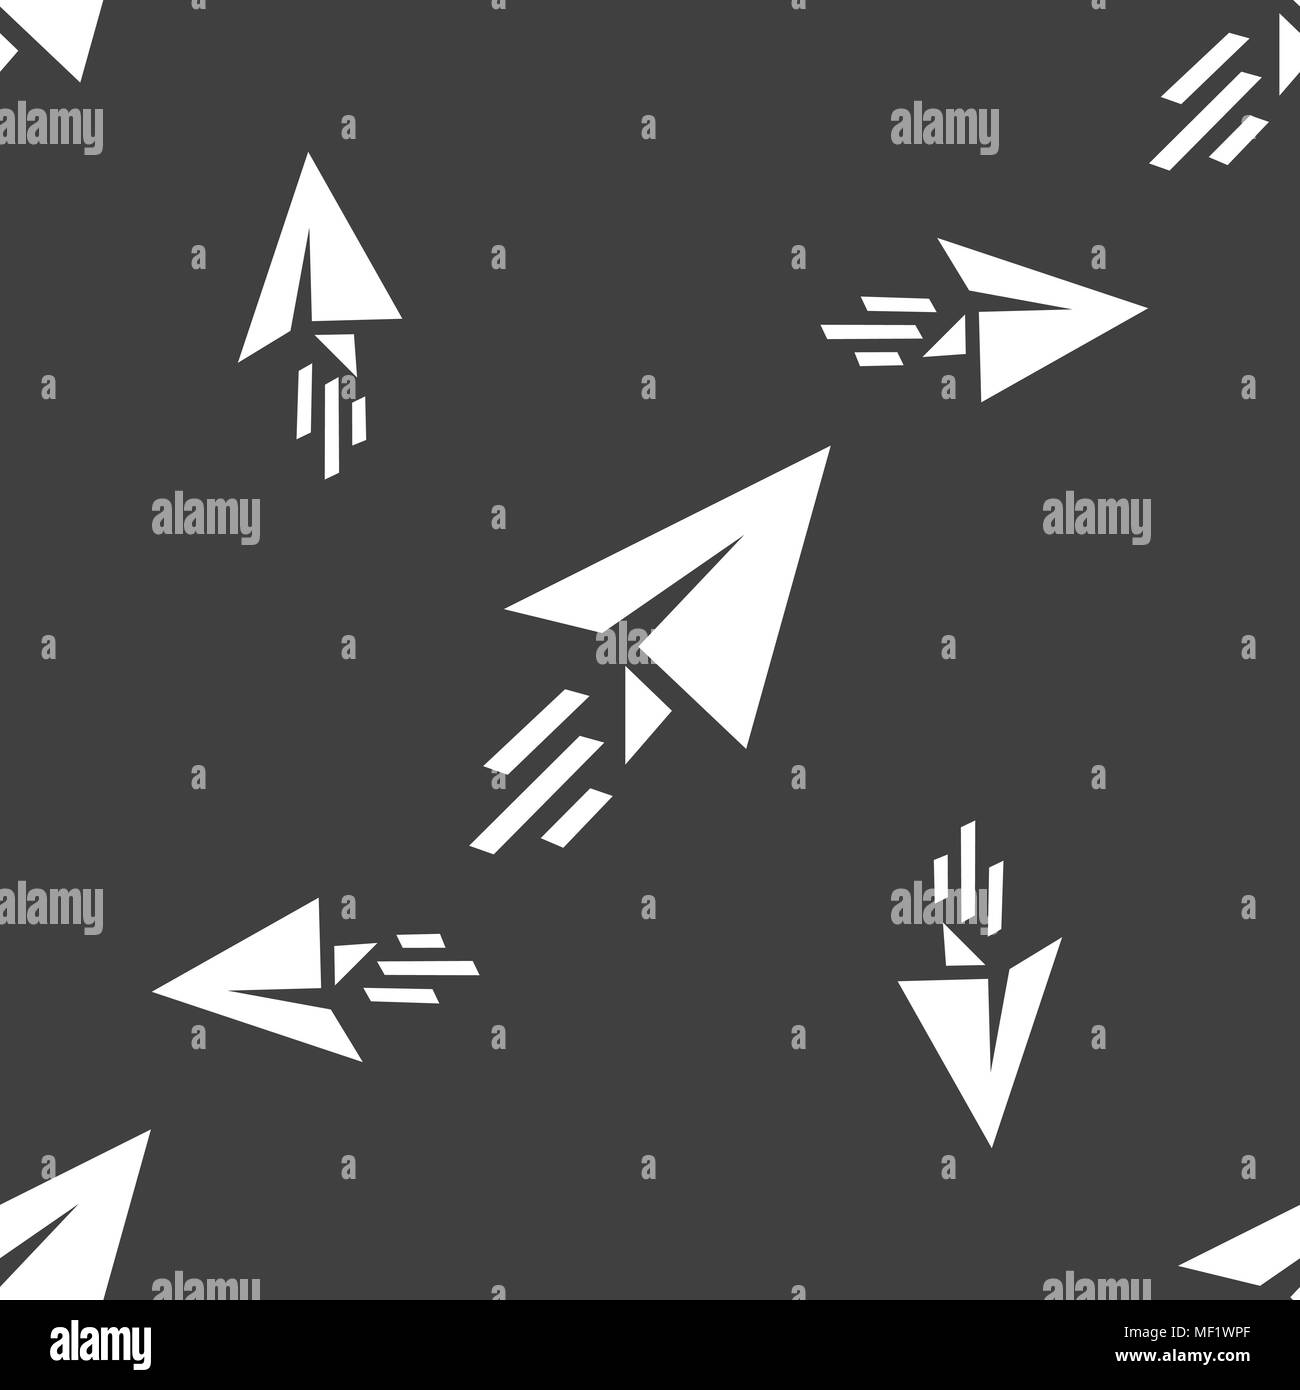 Paper airplane icon sign. Seamless pattern on a gray background. Vector illustration - Stock Image